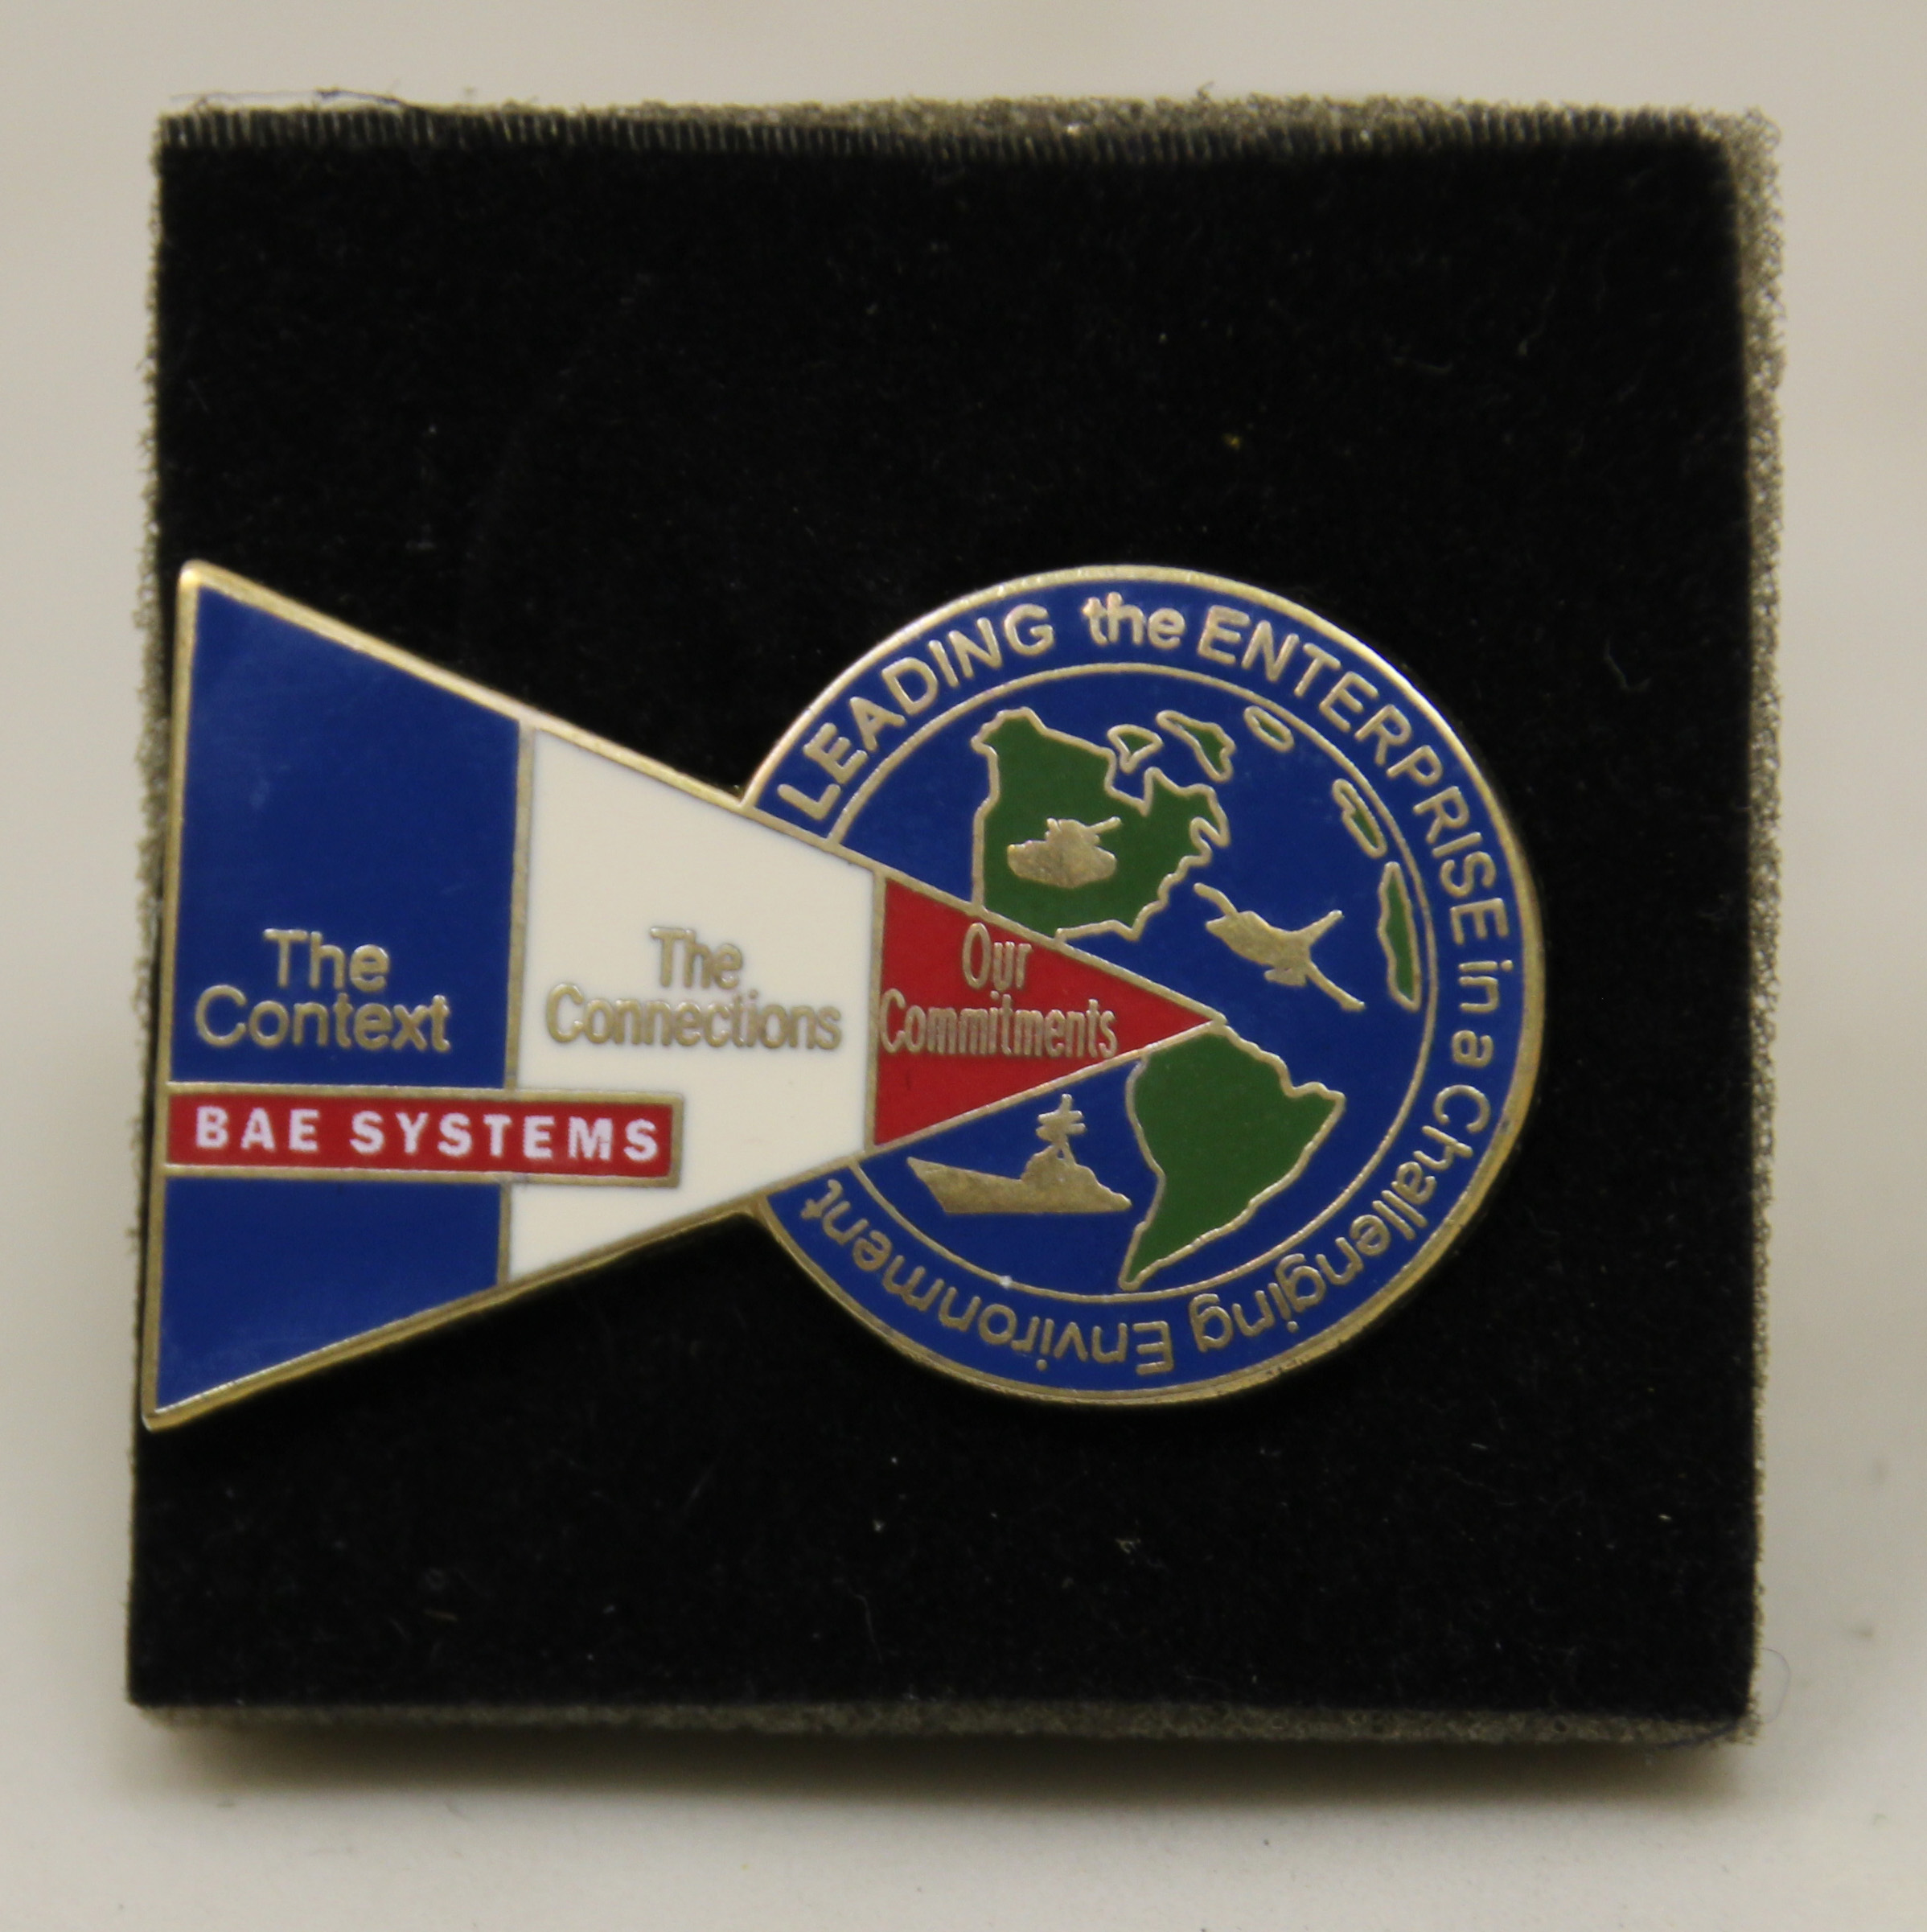 BAE Systems Badge